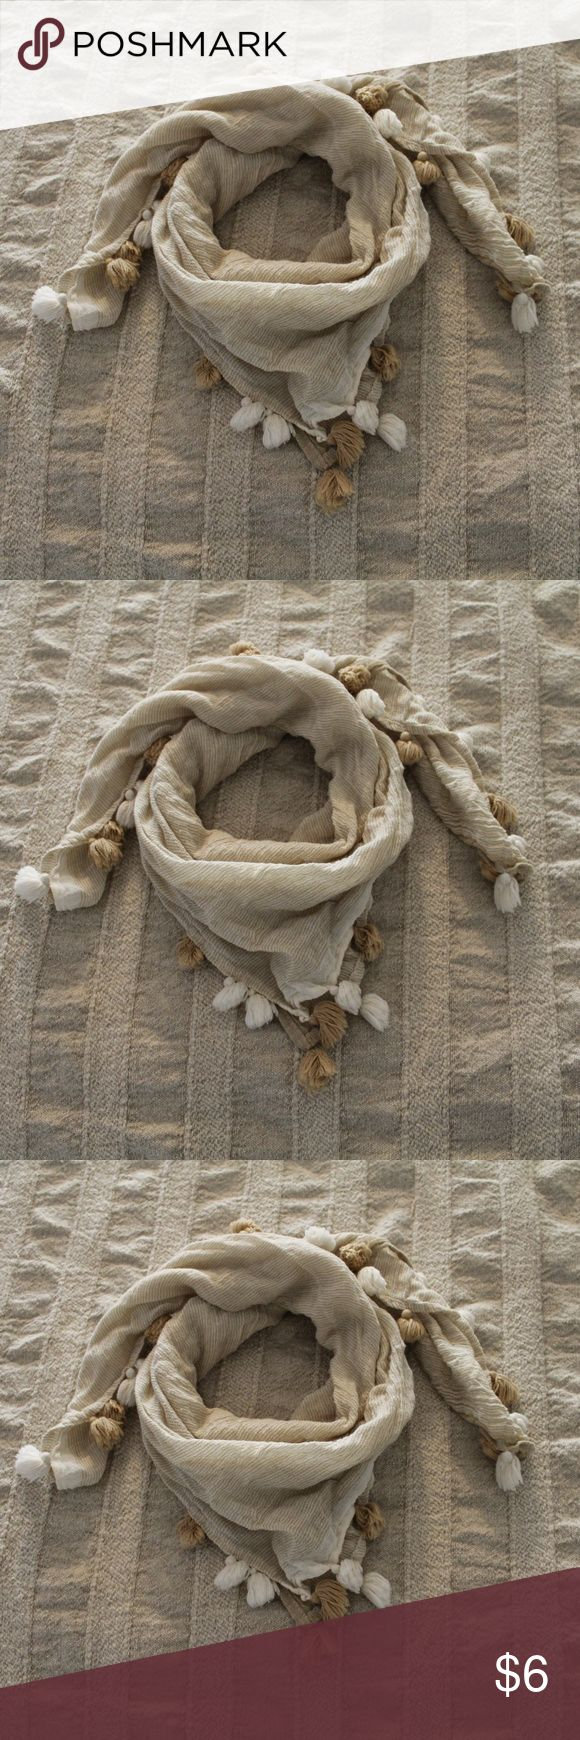 Light Beige Scarf with Tassles Light Beige Scarf with Tassles  Perfect for that cool summer night or just a fun accessory! - L. Forever 21 Accessories Scarves & Wraps